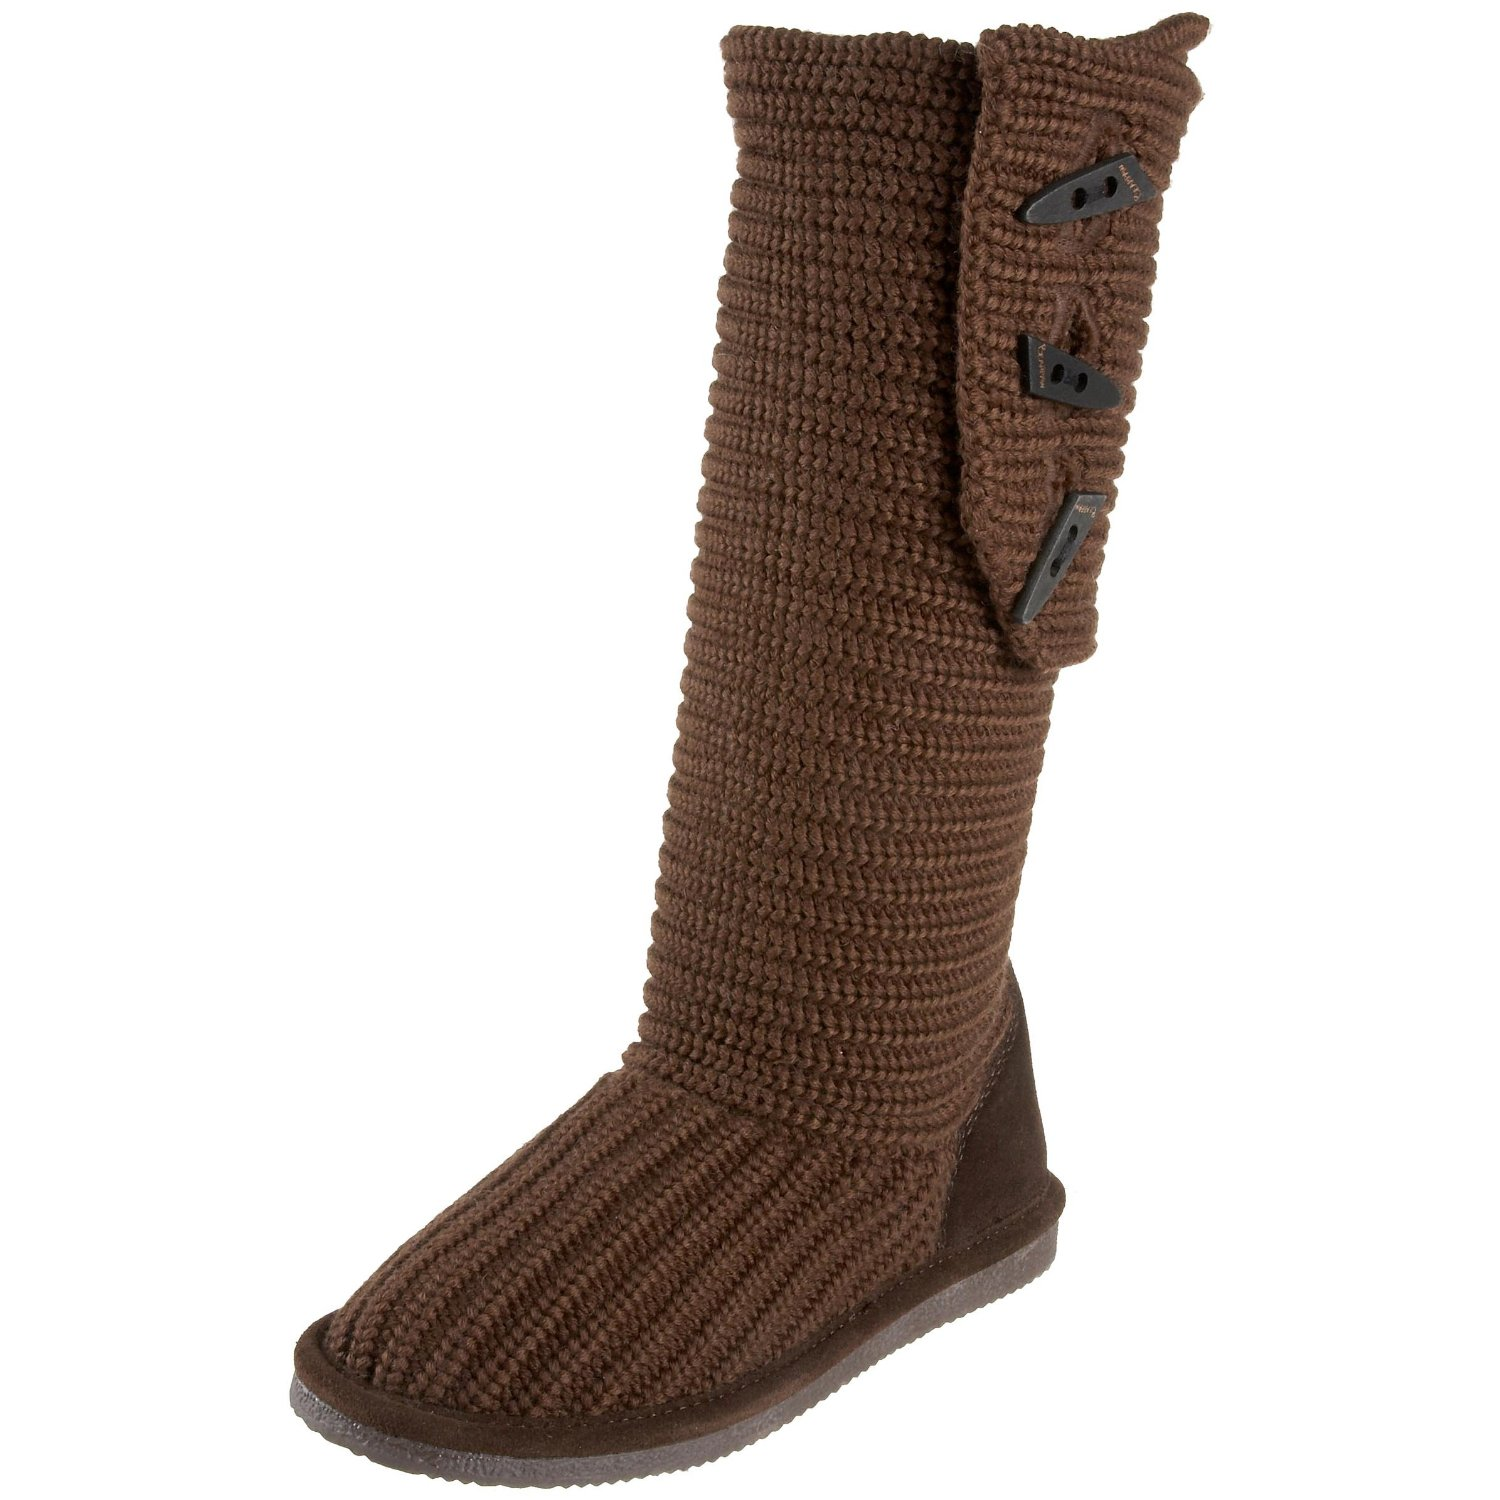 where to buy bearpaw boots